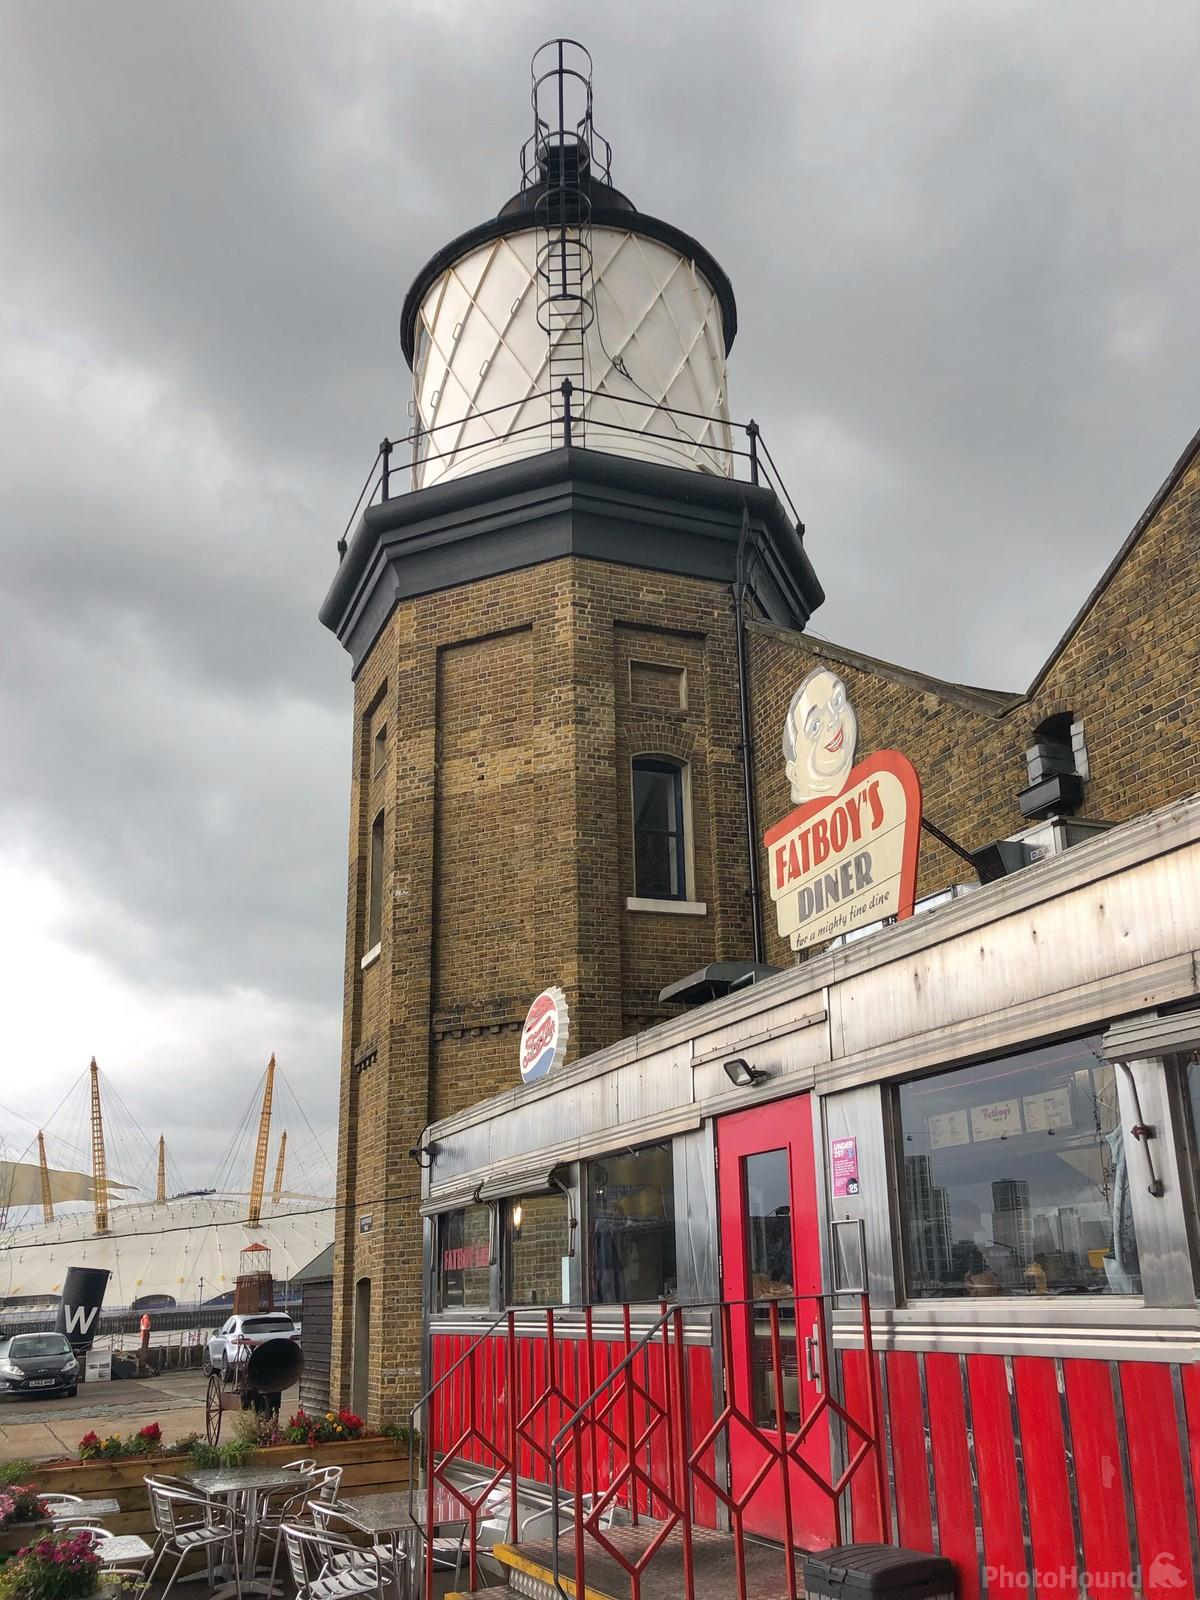 Image of Trinity Buoy Wharf by Jules Renahan